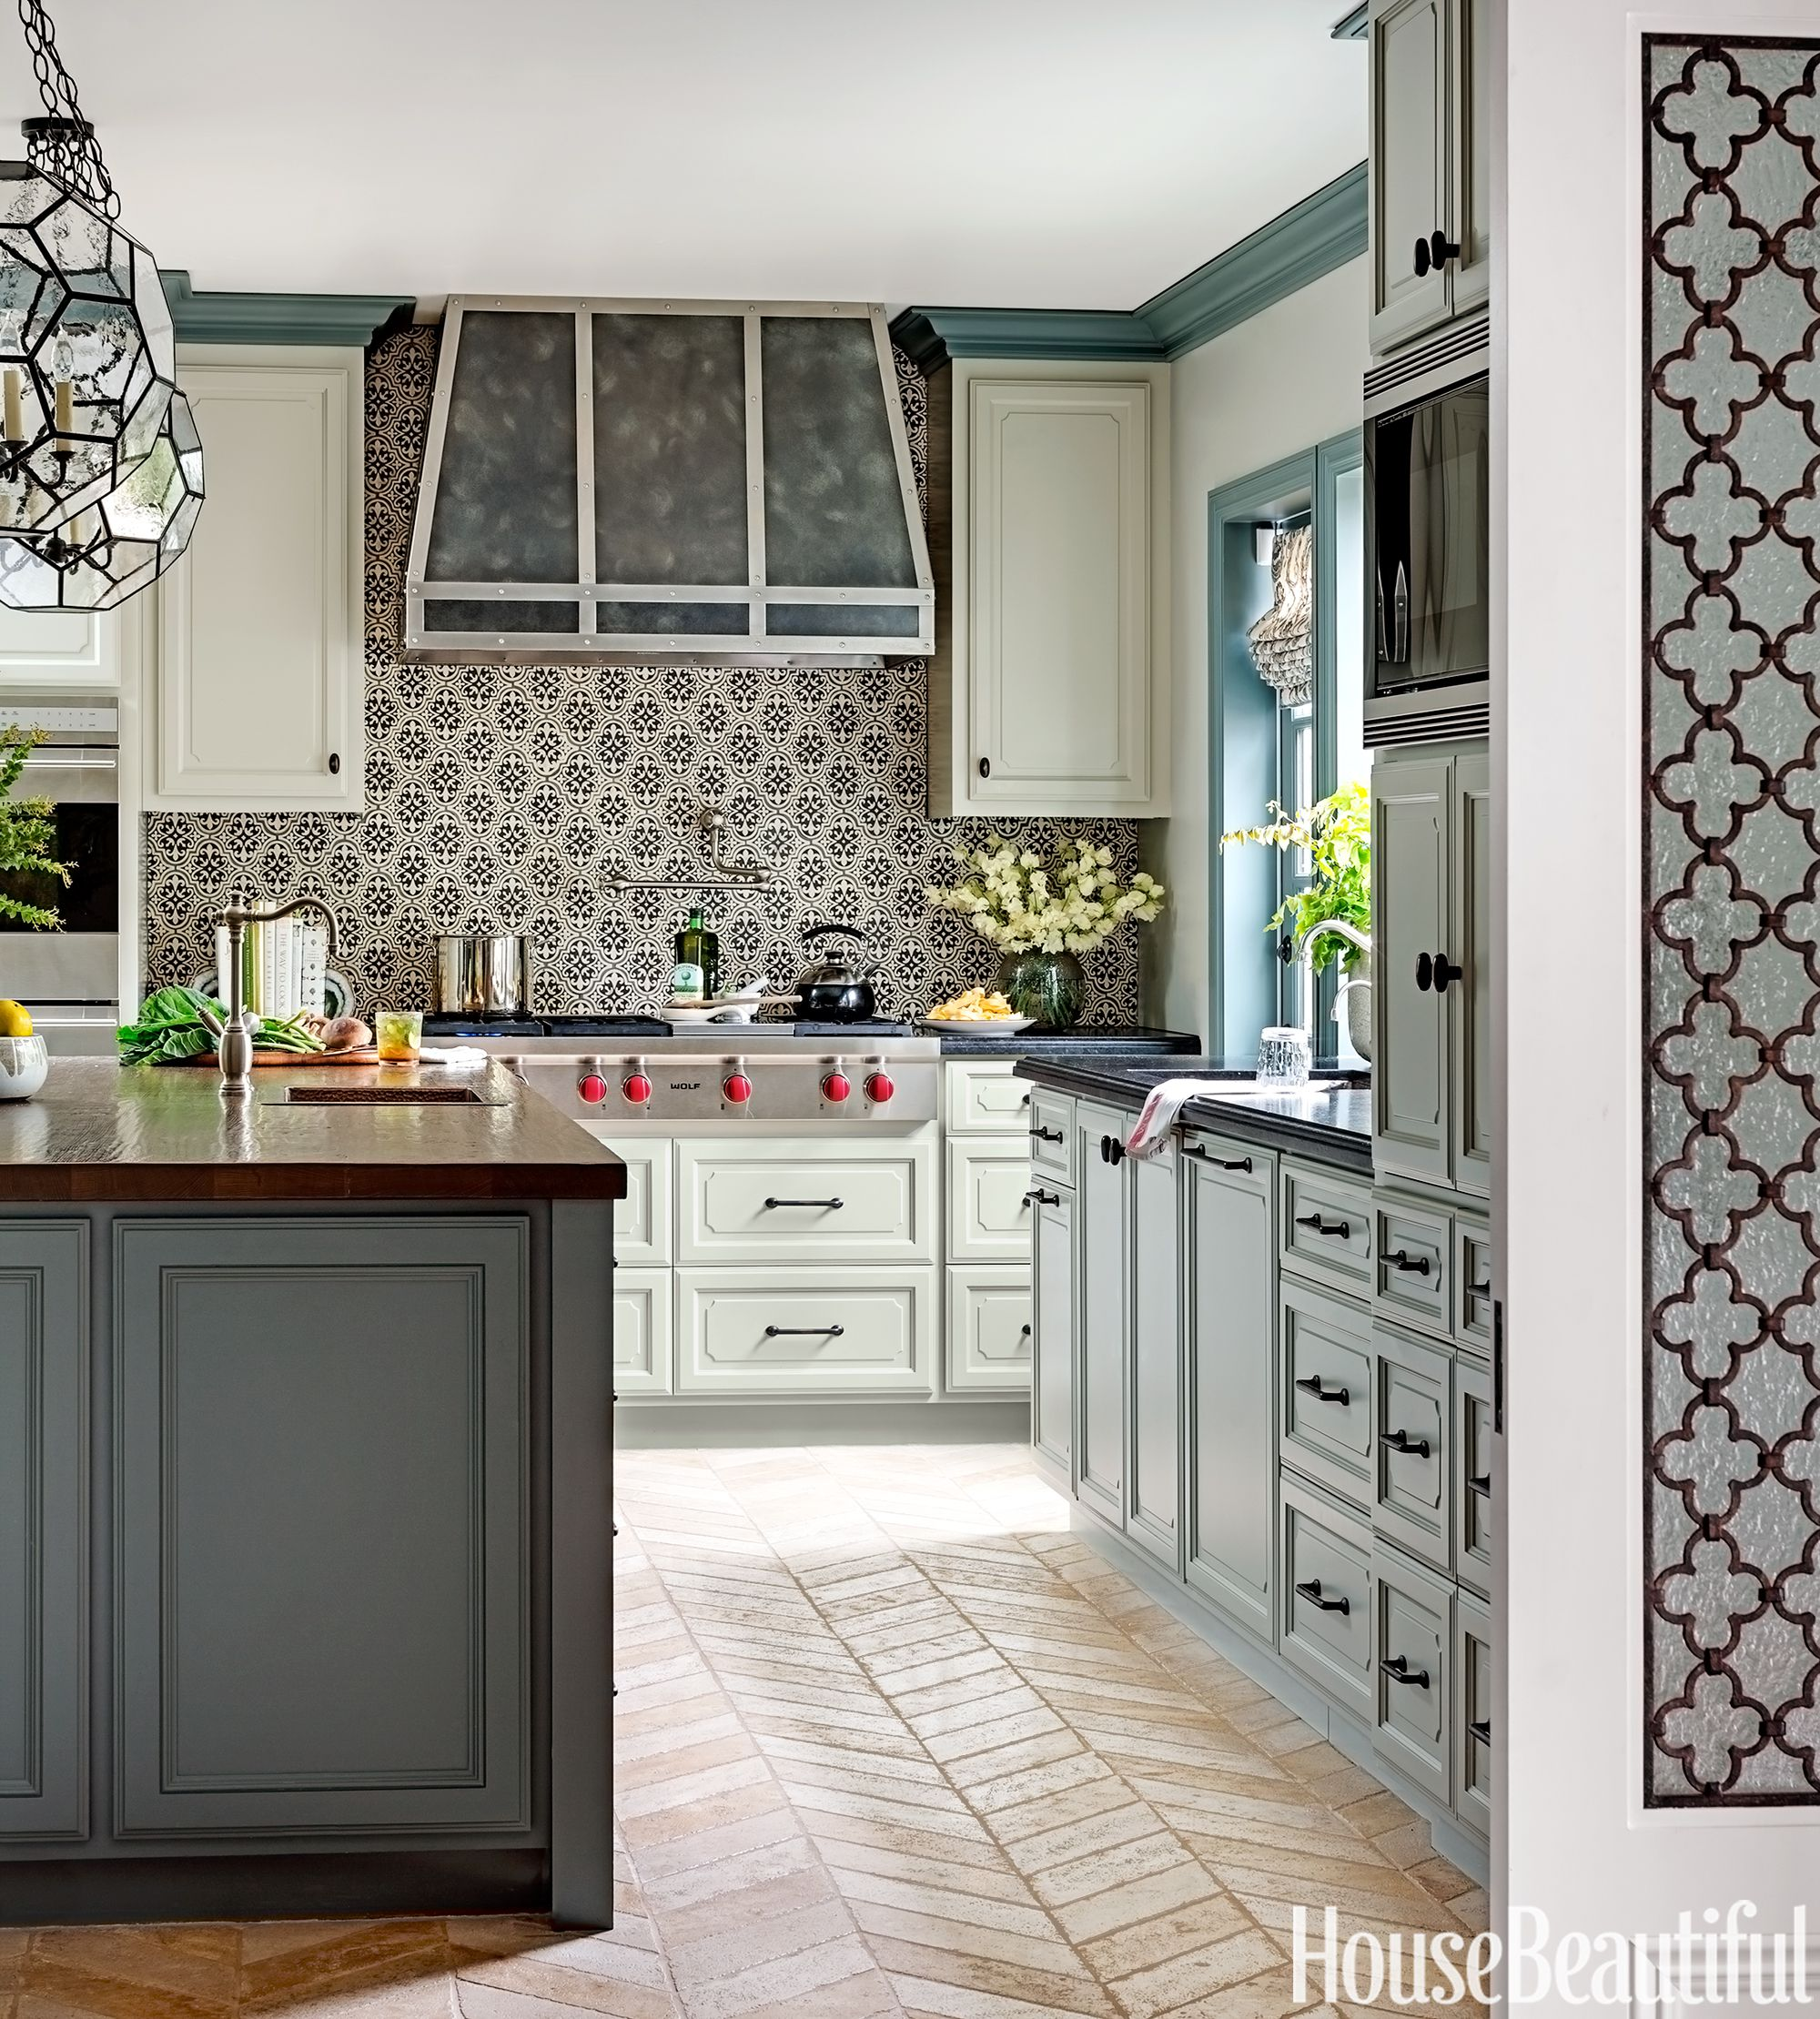 Kitchen back wall tiles Best ideas for kitchen back walls - Tile designs for kitchen back walls TRKLLSZ